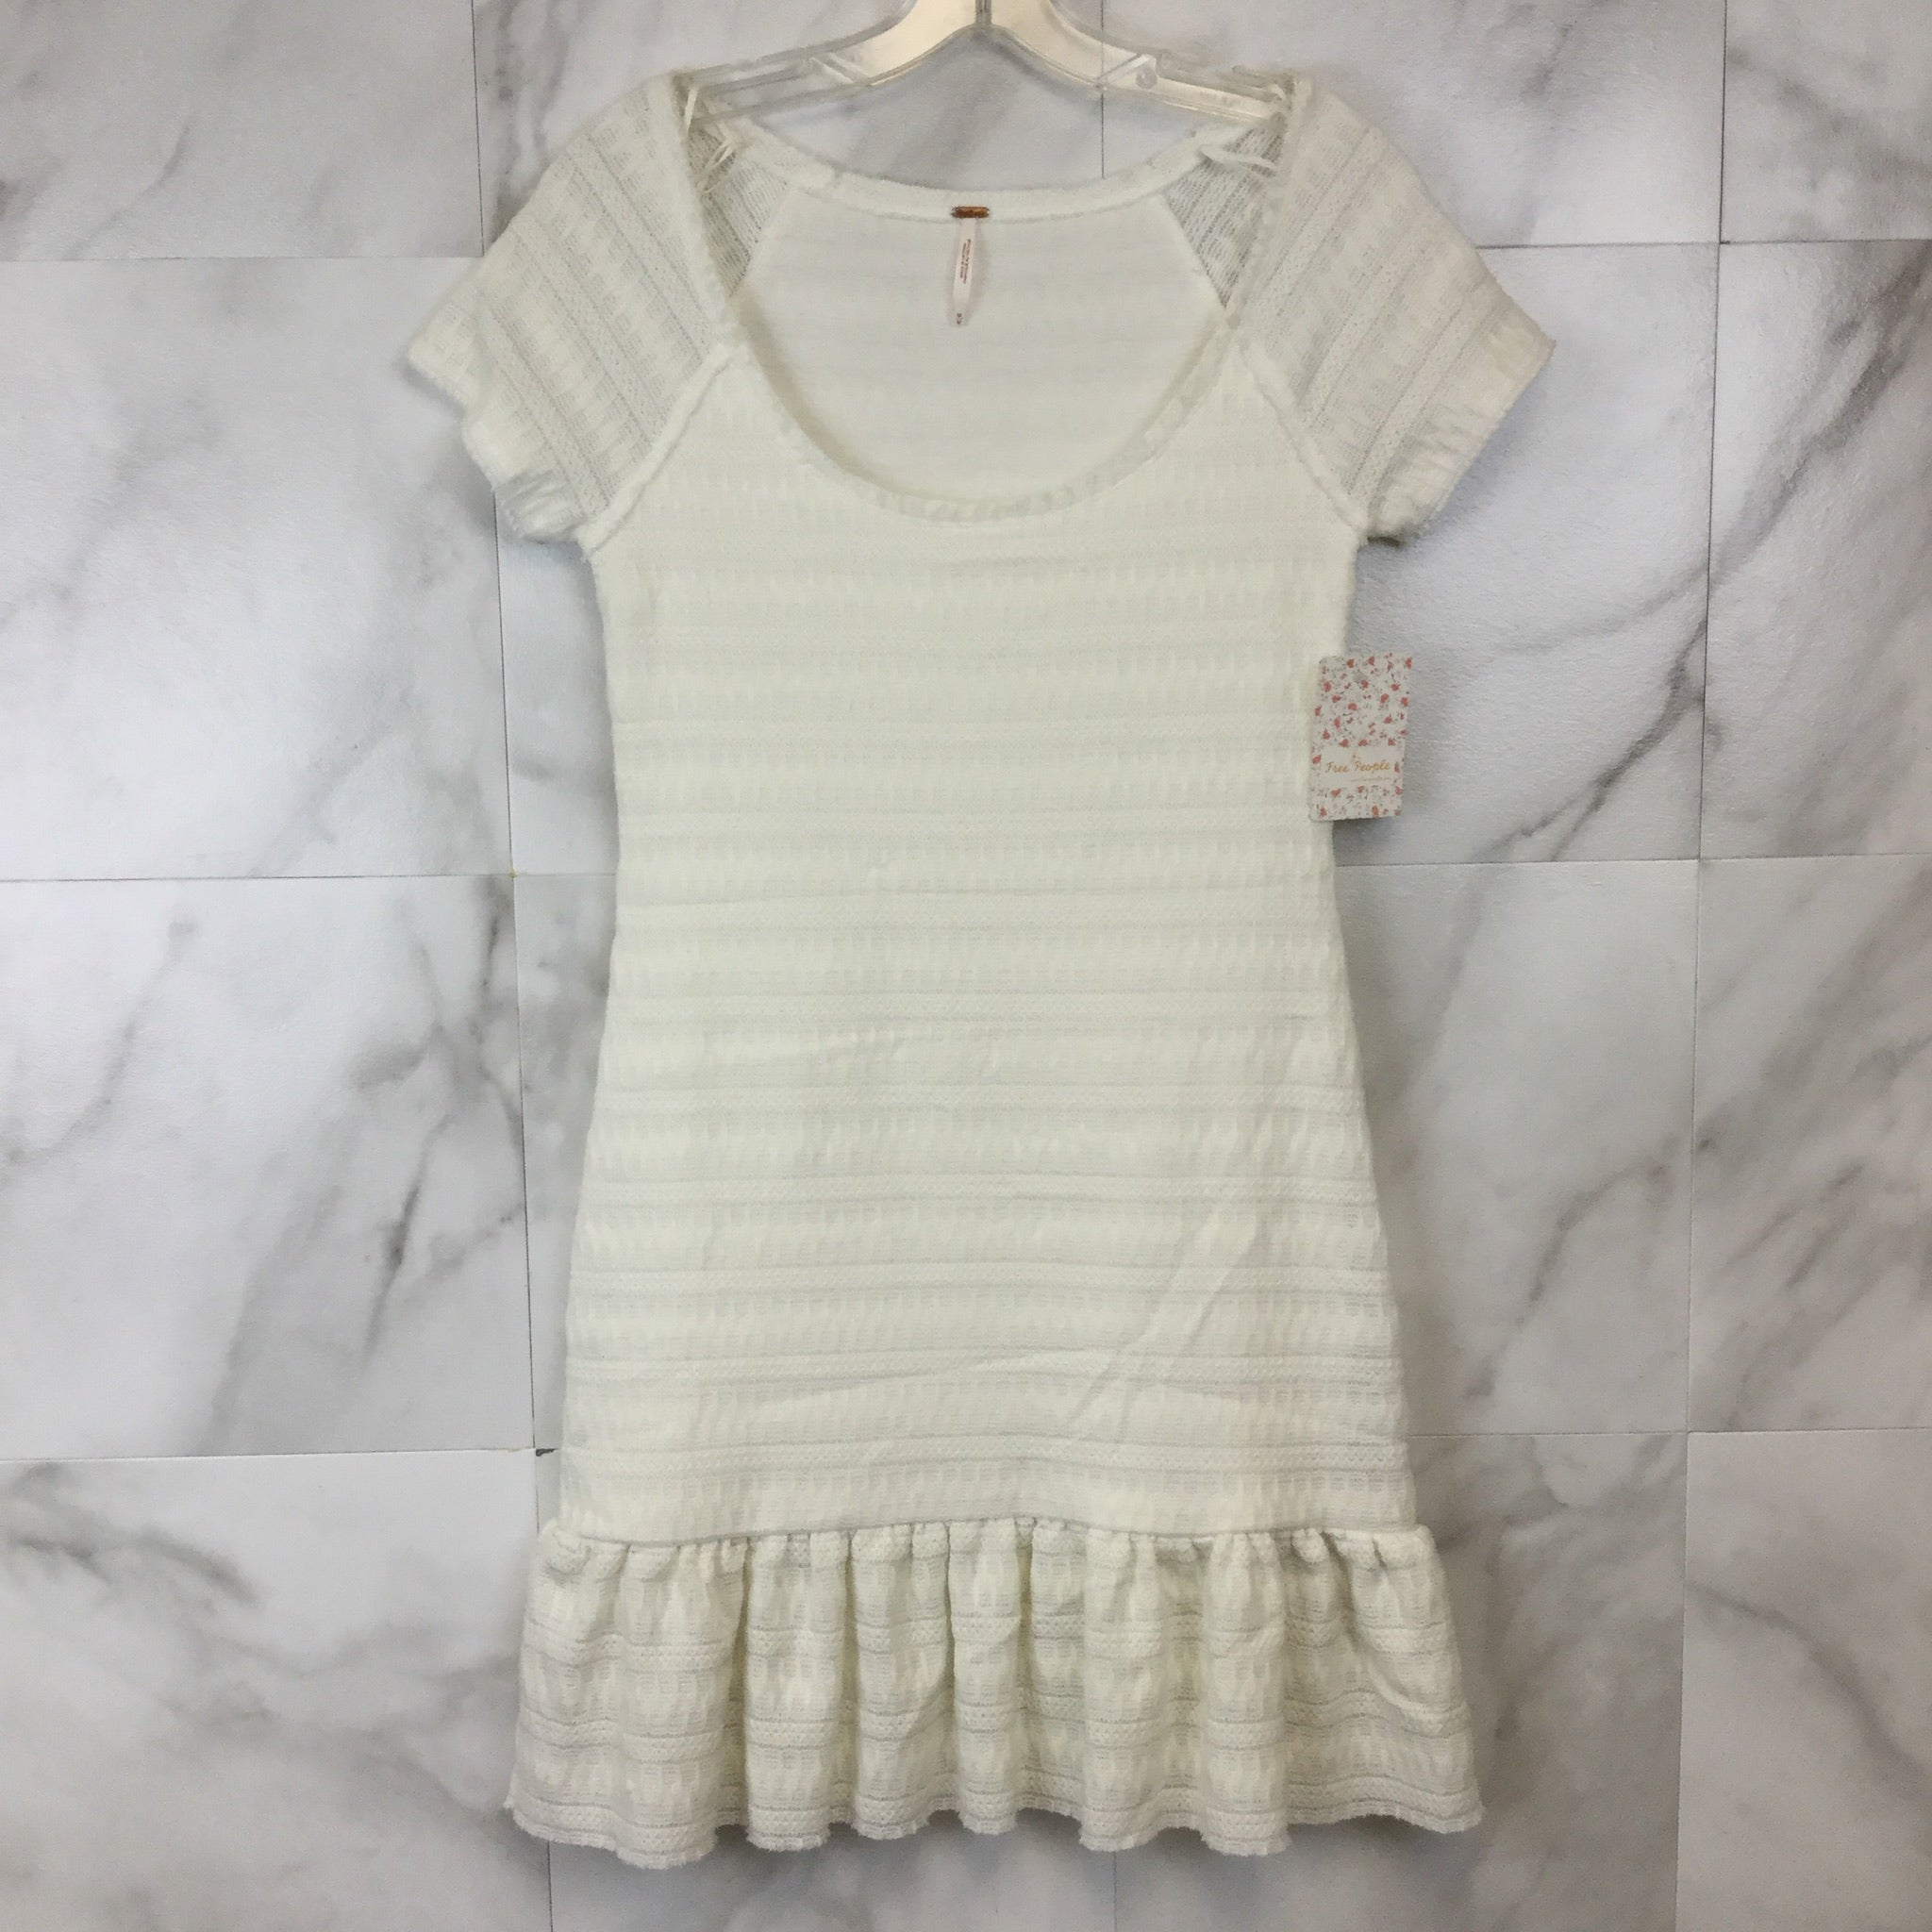 Free People Cozy Day Flounce Dress - size M